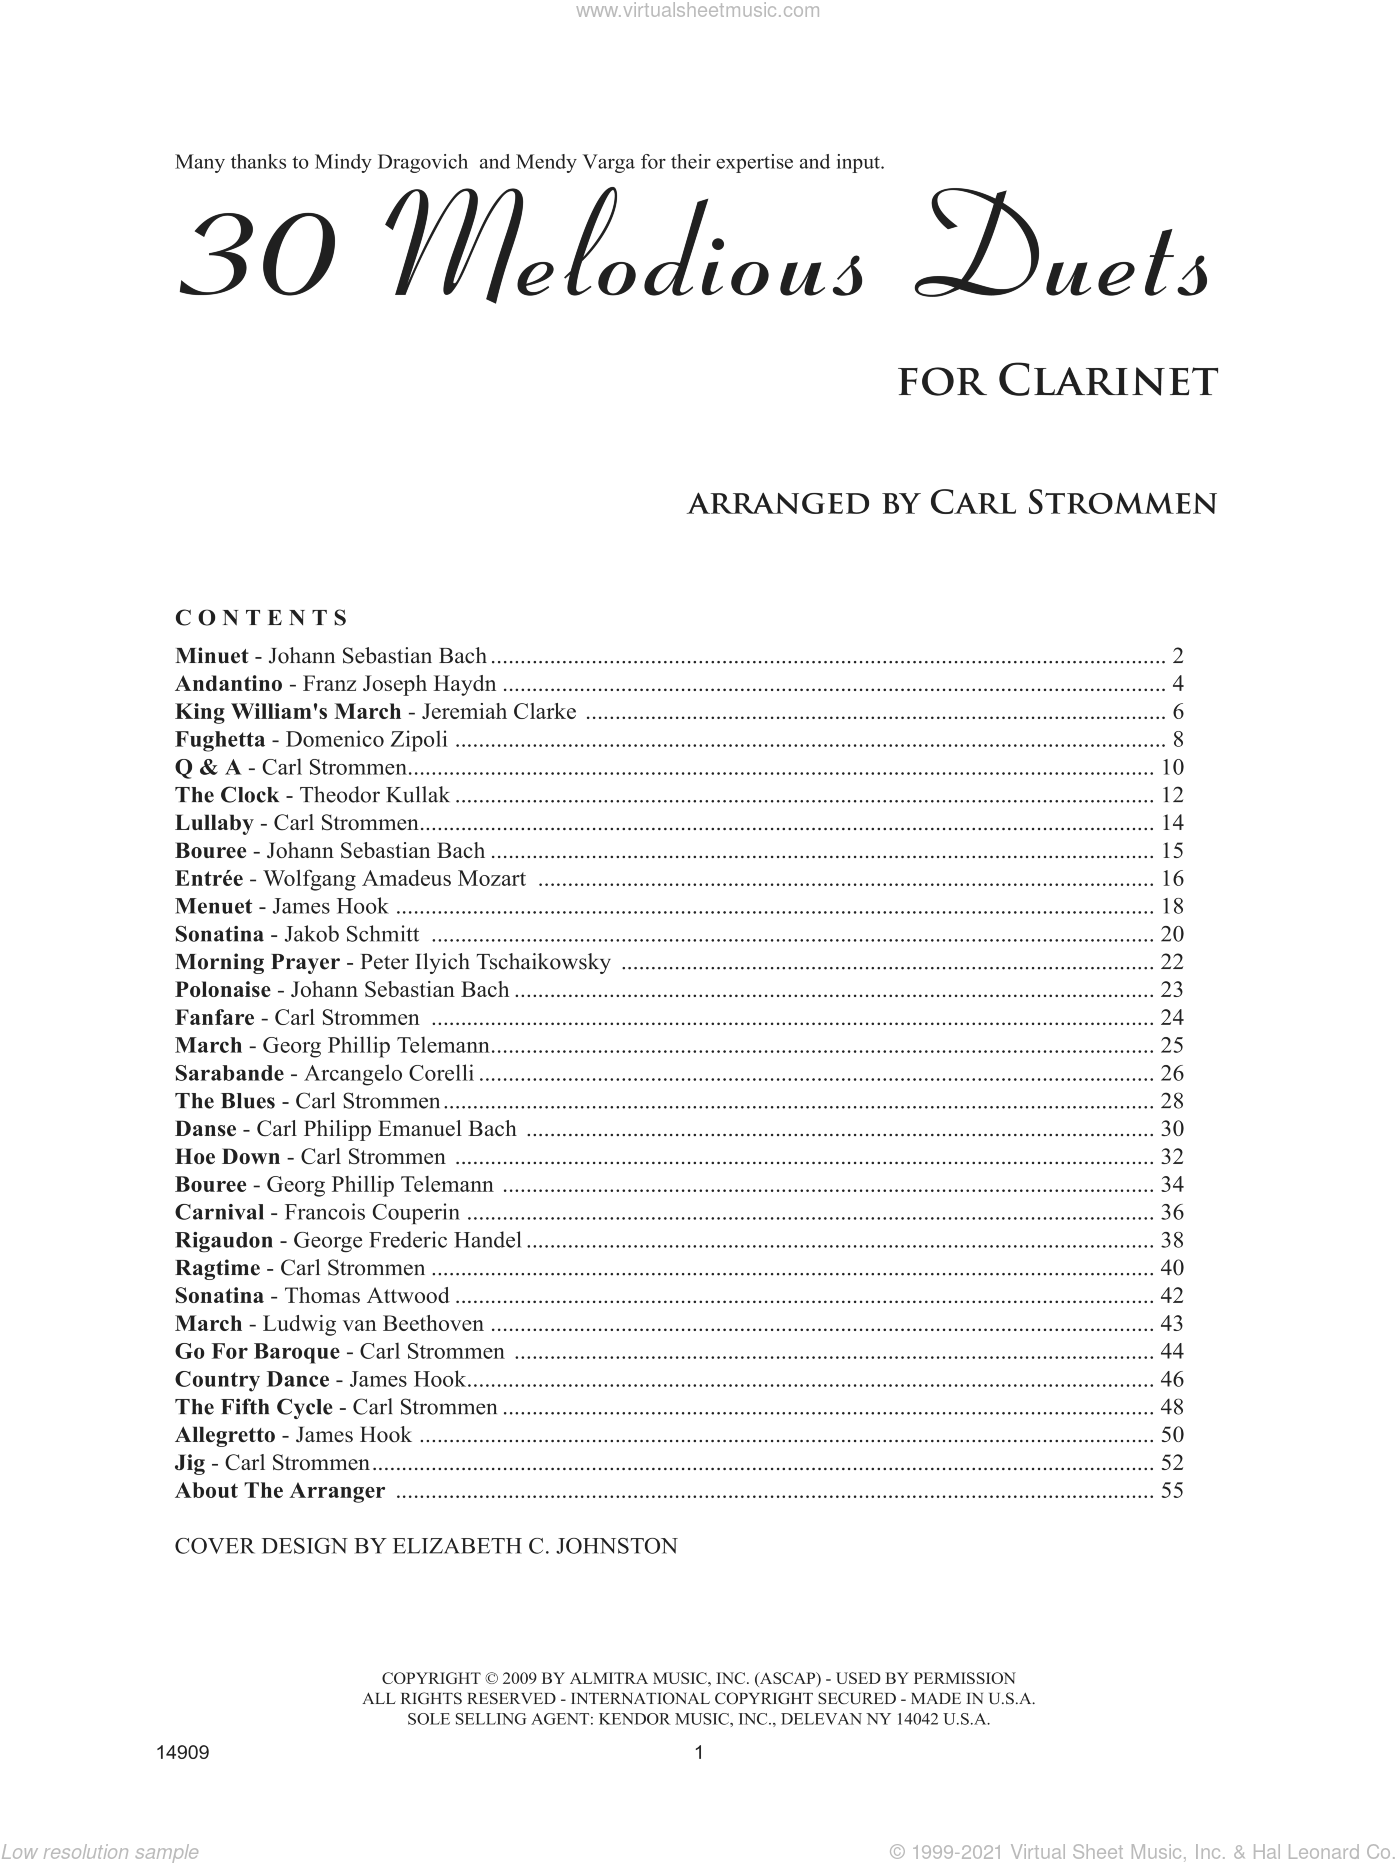 30 Melodious Duets sheet music for two clarinets by Carl Strommen, classical score, intermediate duet. Score Image Preview.